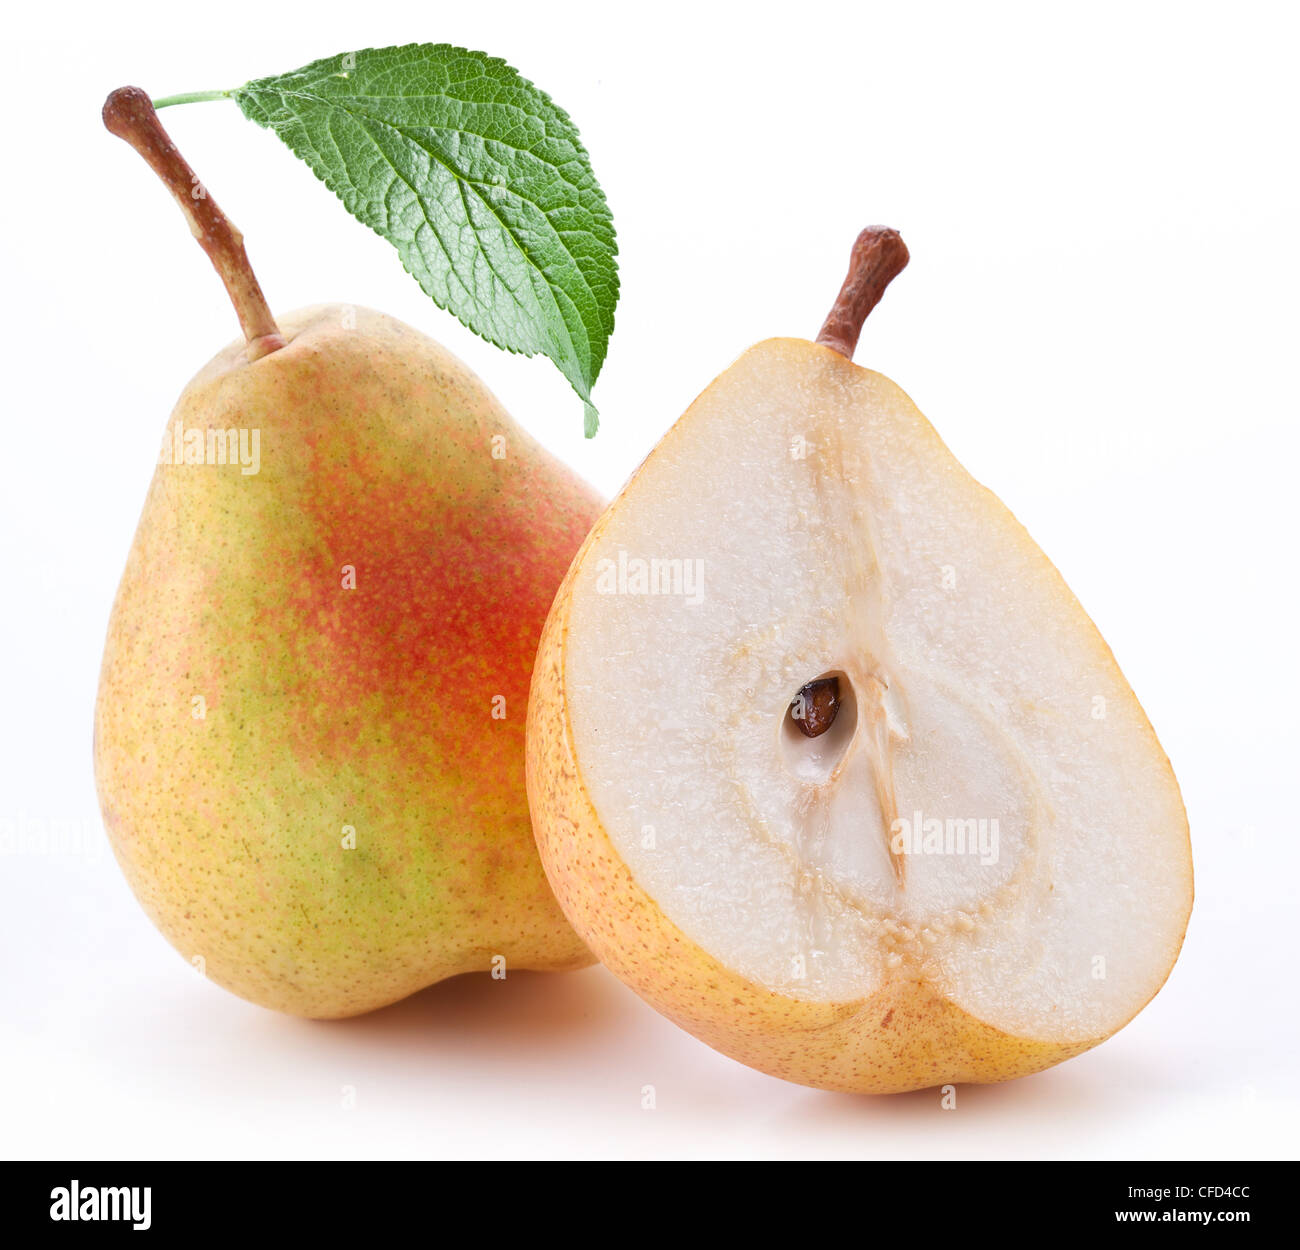 Ripe pears with leaf. Objects are isolated on a white background. - Stock Image